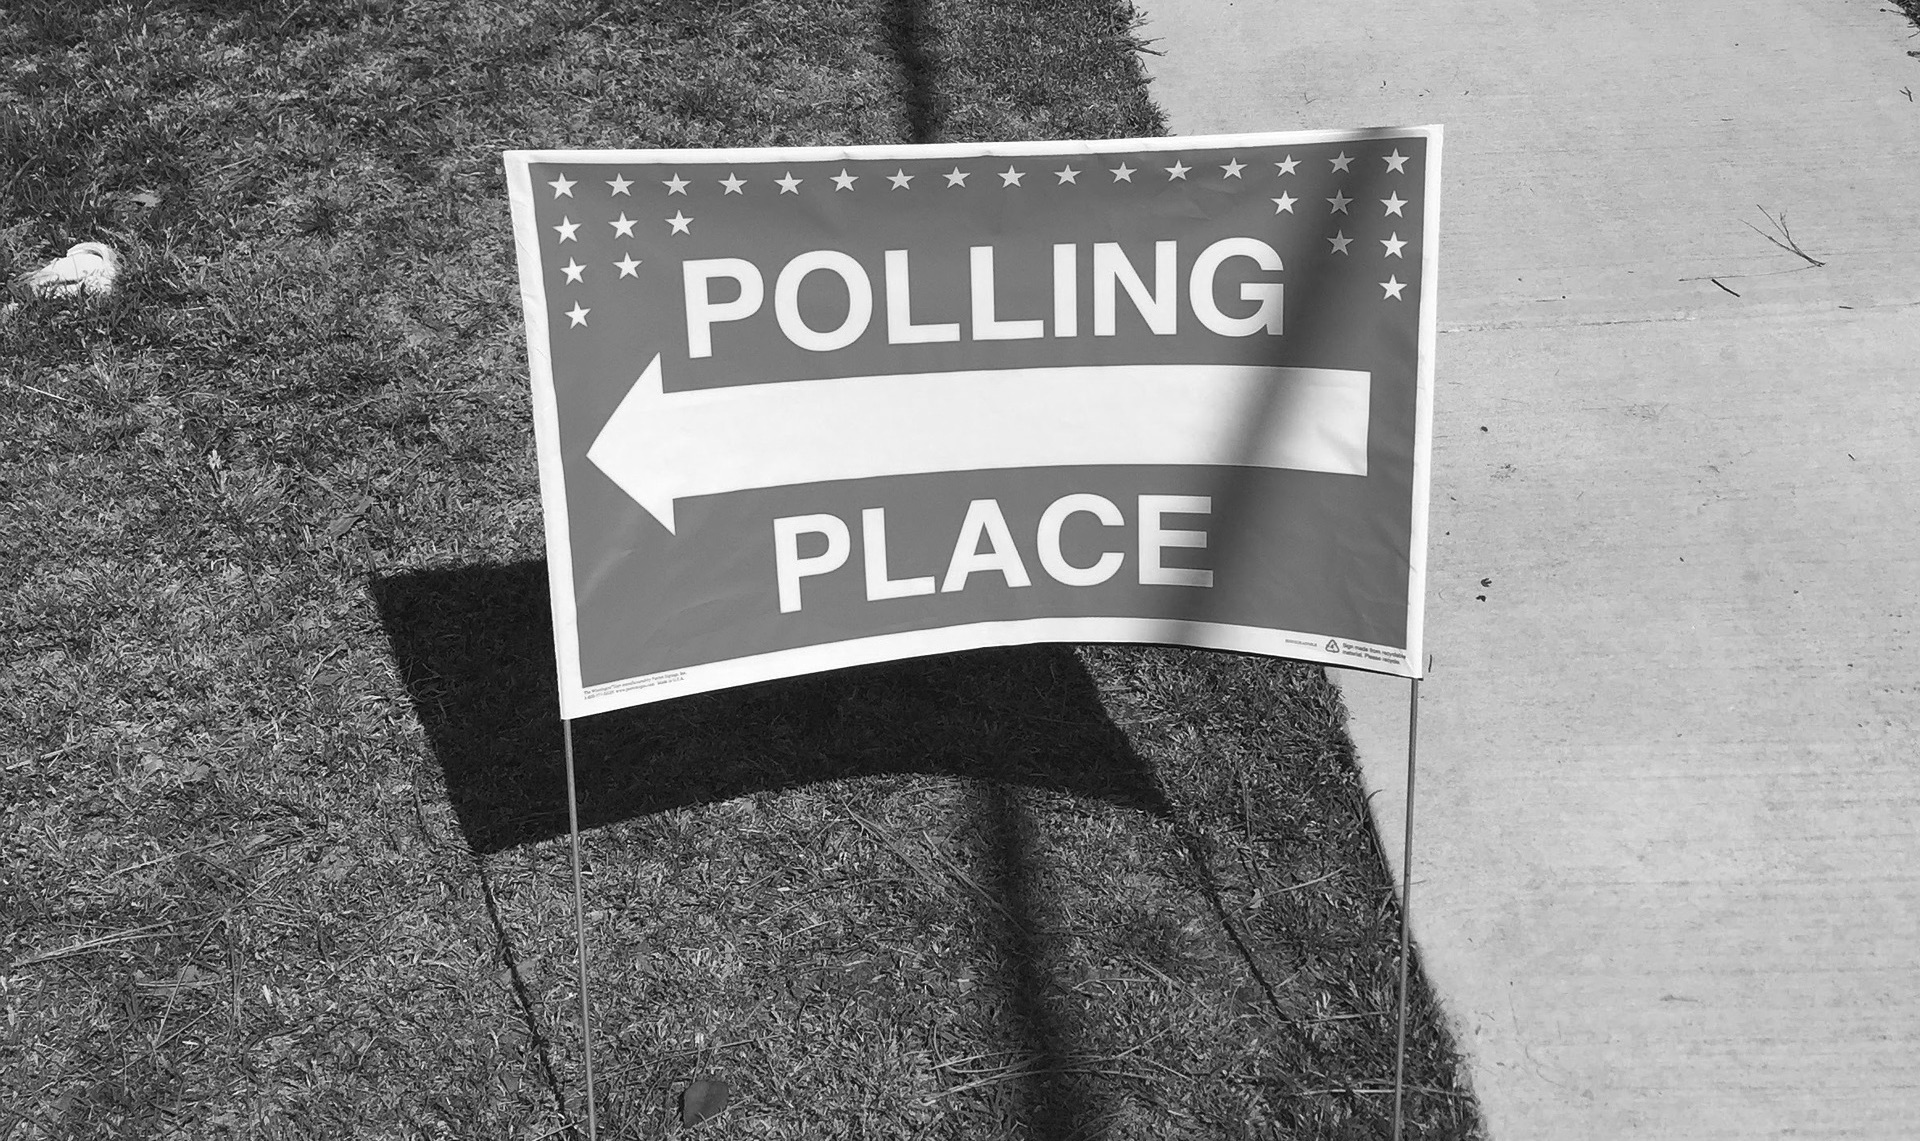 On Voting Law Debate, Issuers Have No Place to Hide